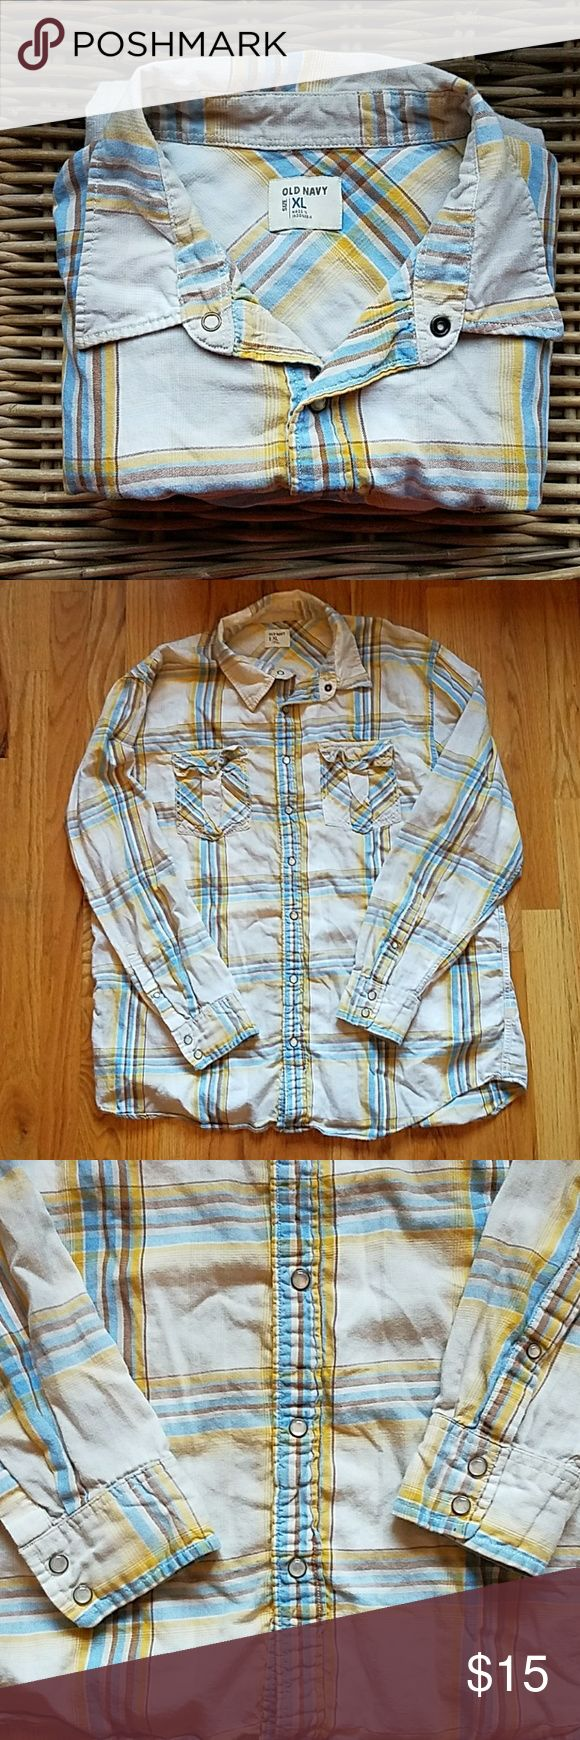 snap-button men's plaid shirt. - plaid shirt in cream, brown, blue, & yellow. - button down closure with snap buttons, as well as the buttons along the edge of the sleeve cuffs (see 3rd photo). - small functioning pockets on either side of the chest.  - will accept any reasonable offers! Old Navy Shirts Casual Button Down Shirts